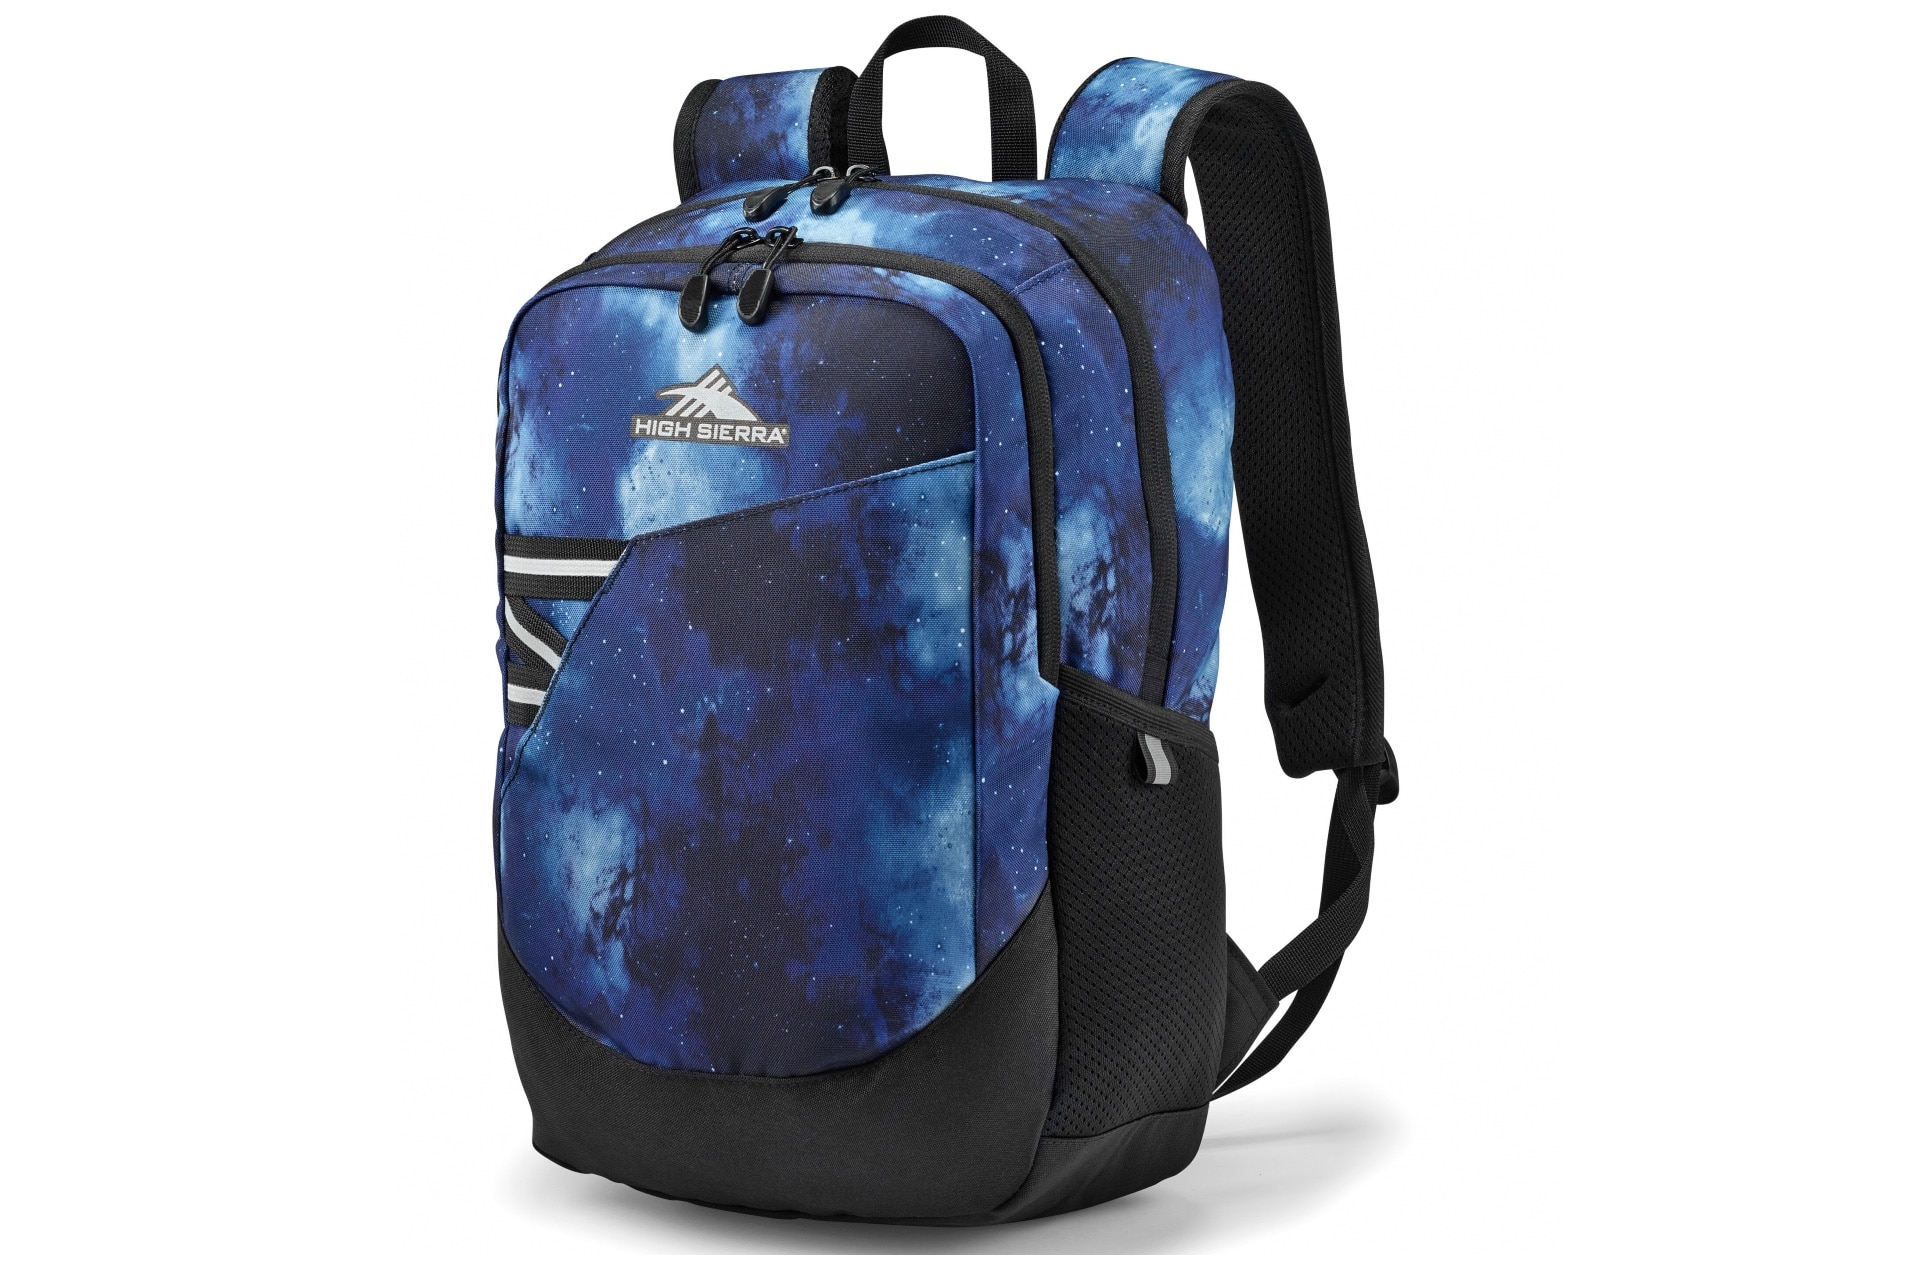 backpack with space pattern